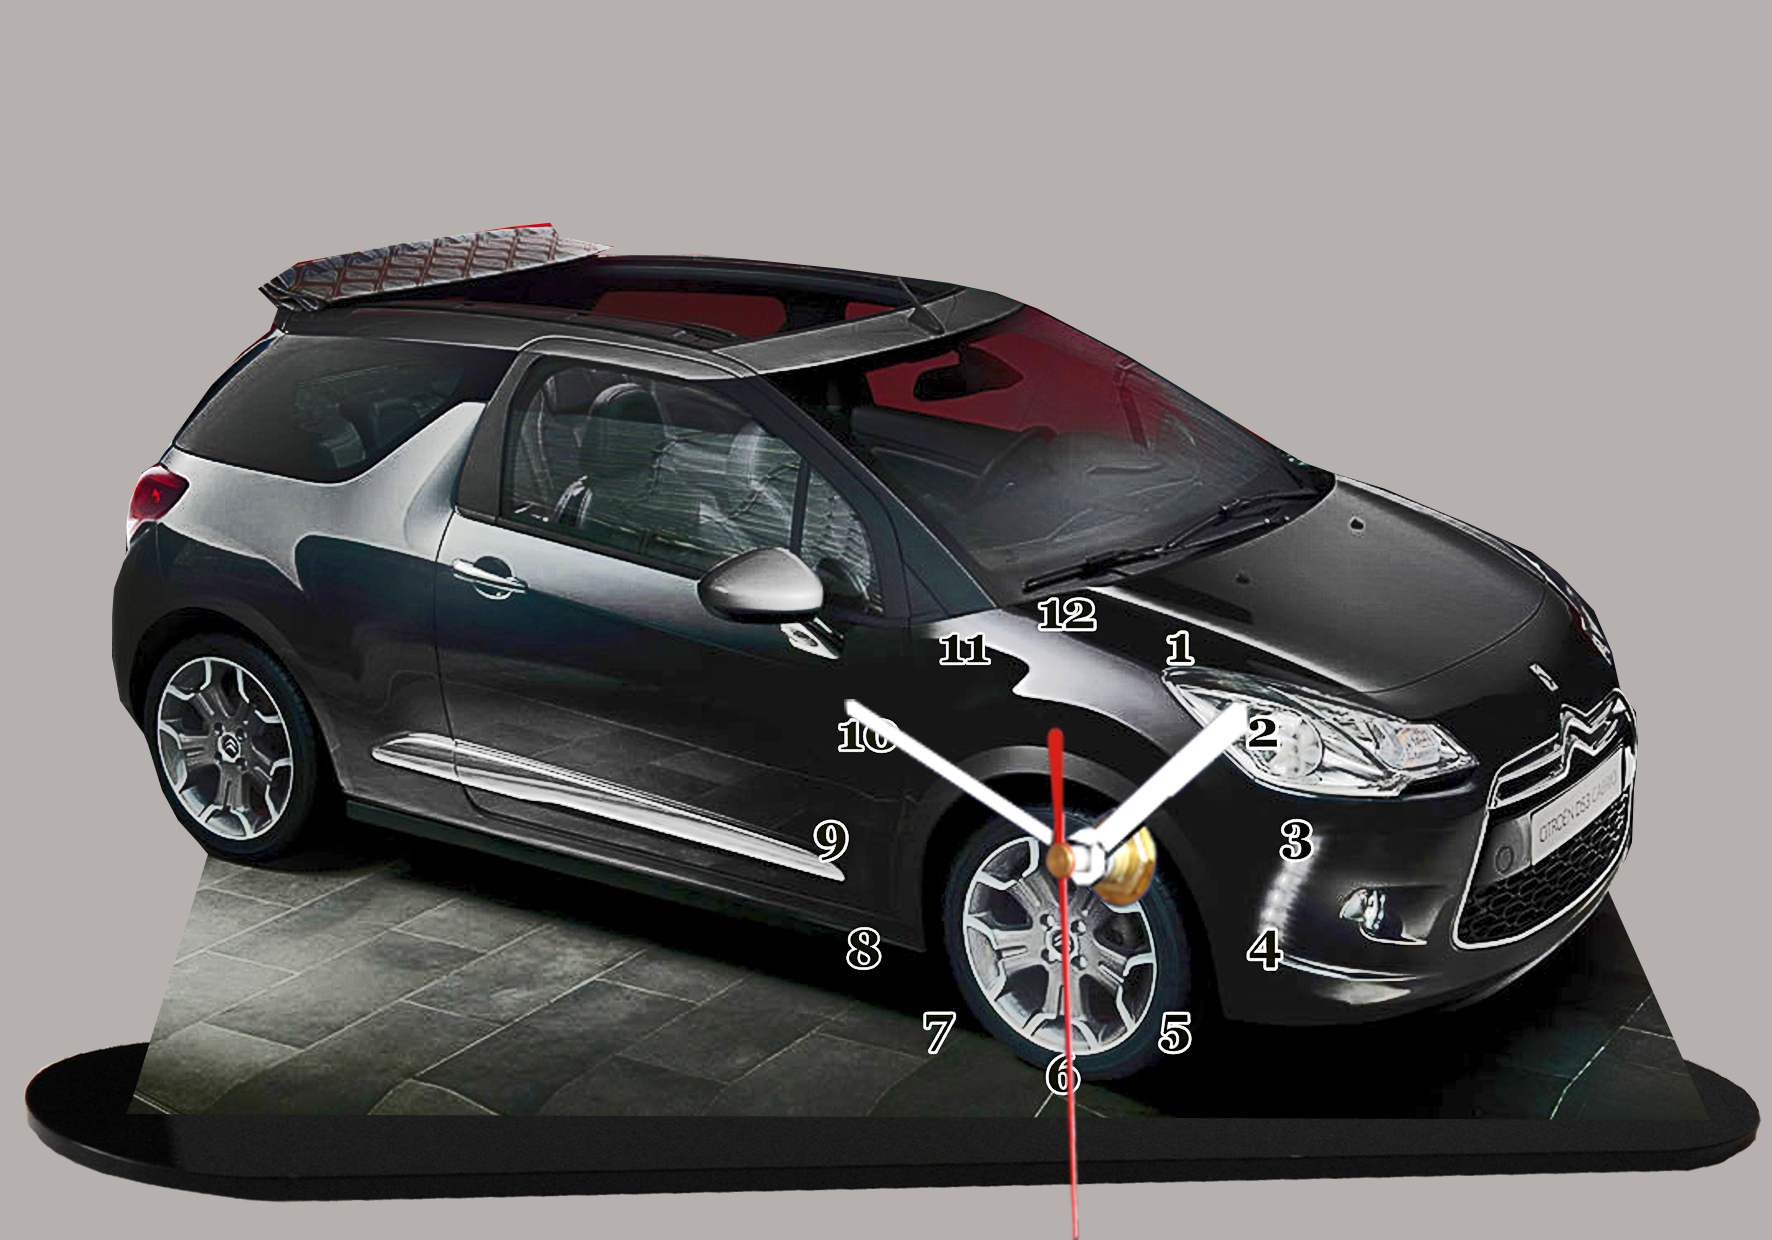 la citroen ds 3 noire en miniature auto horloge. Black Bedroom Furniture Sets. Home Design Ideas